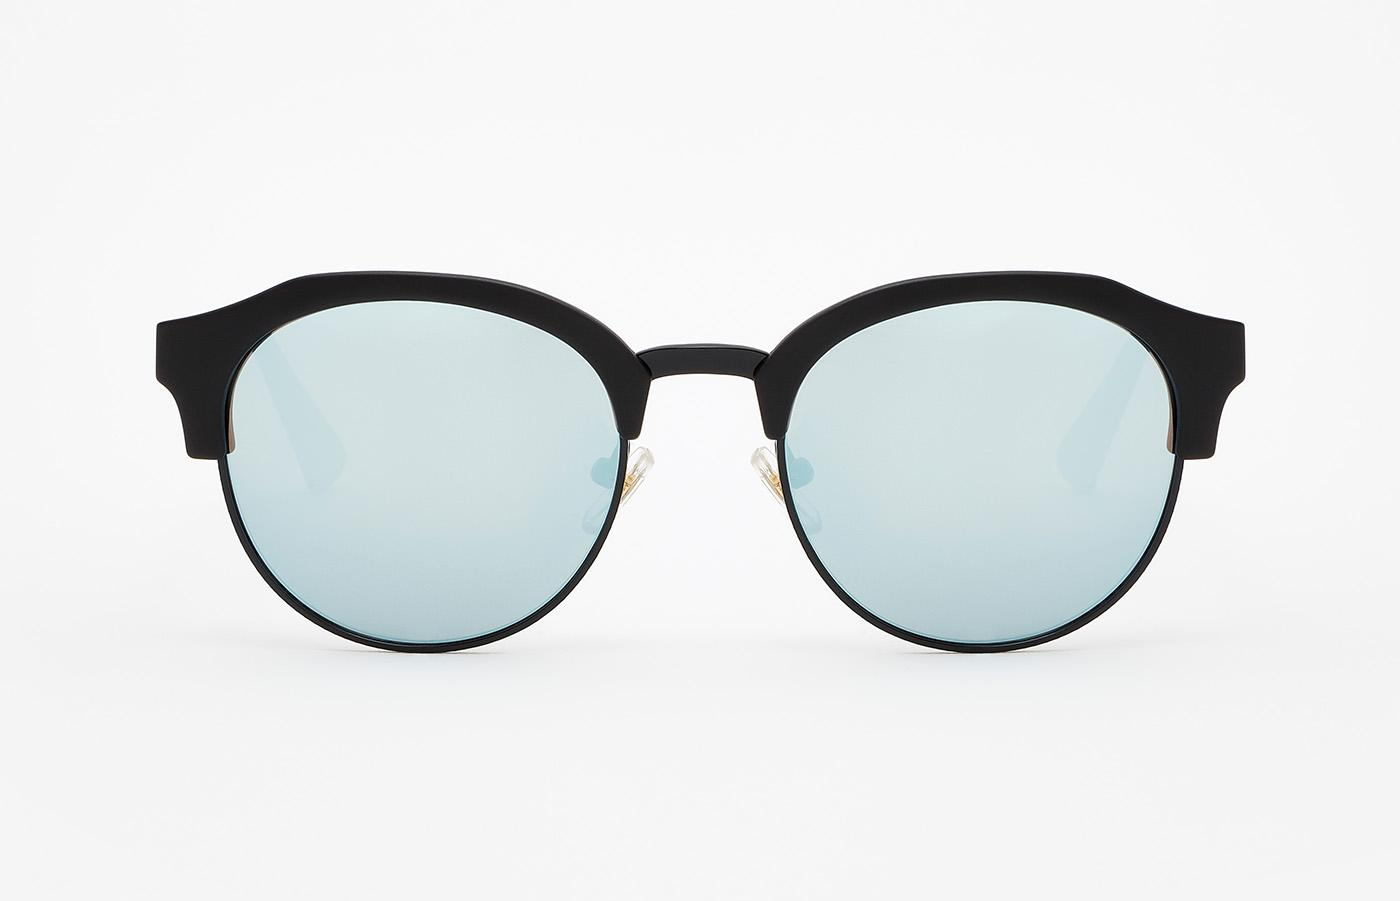 Gafas de Sol Hawkers Black · Navy Blue Chrome Classic Rounded ... bae78737768